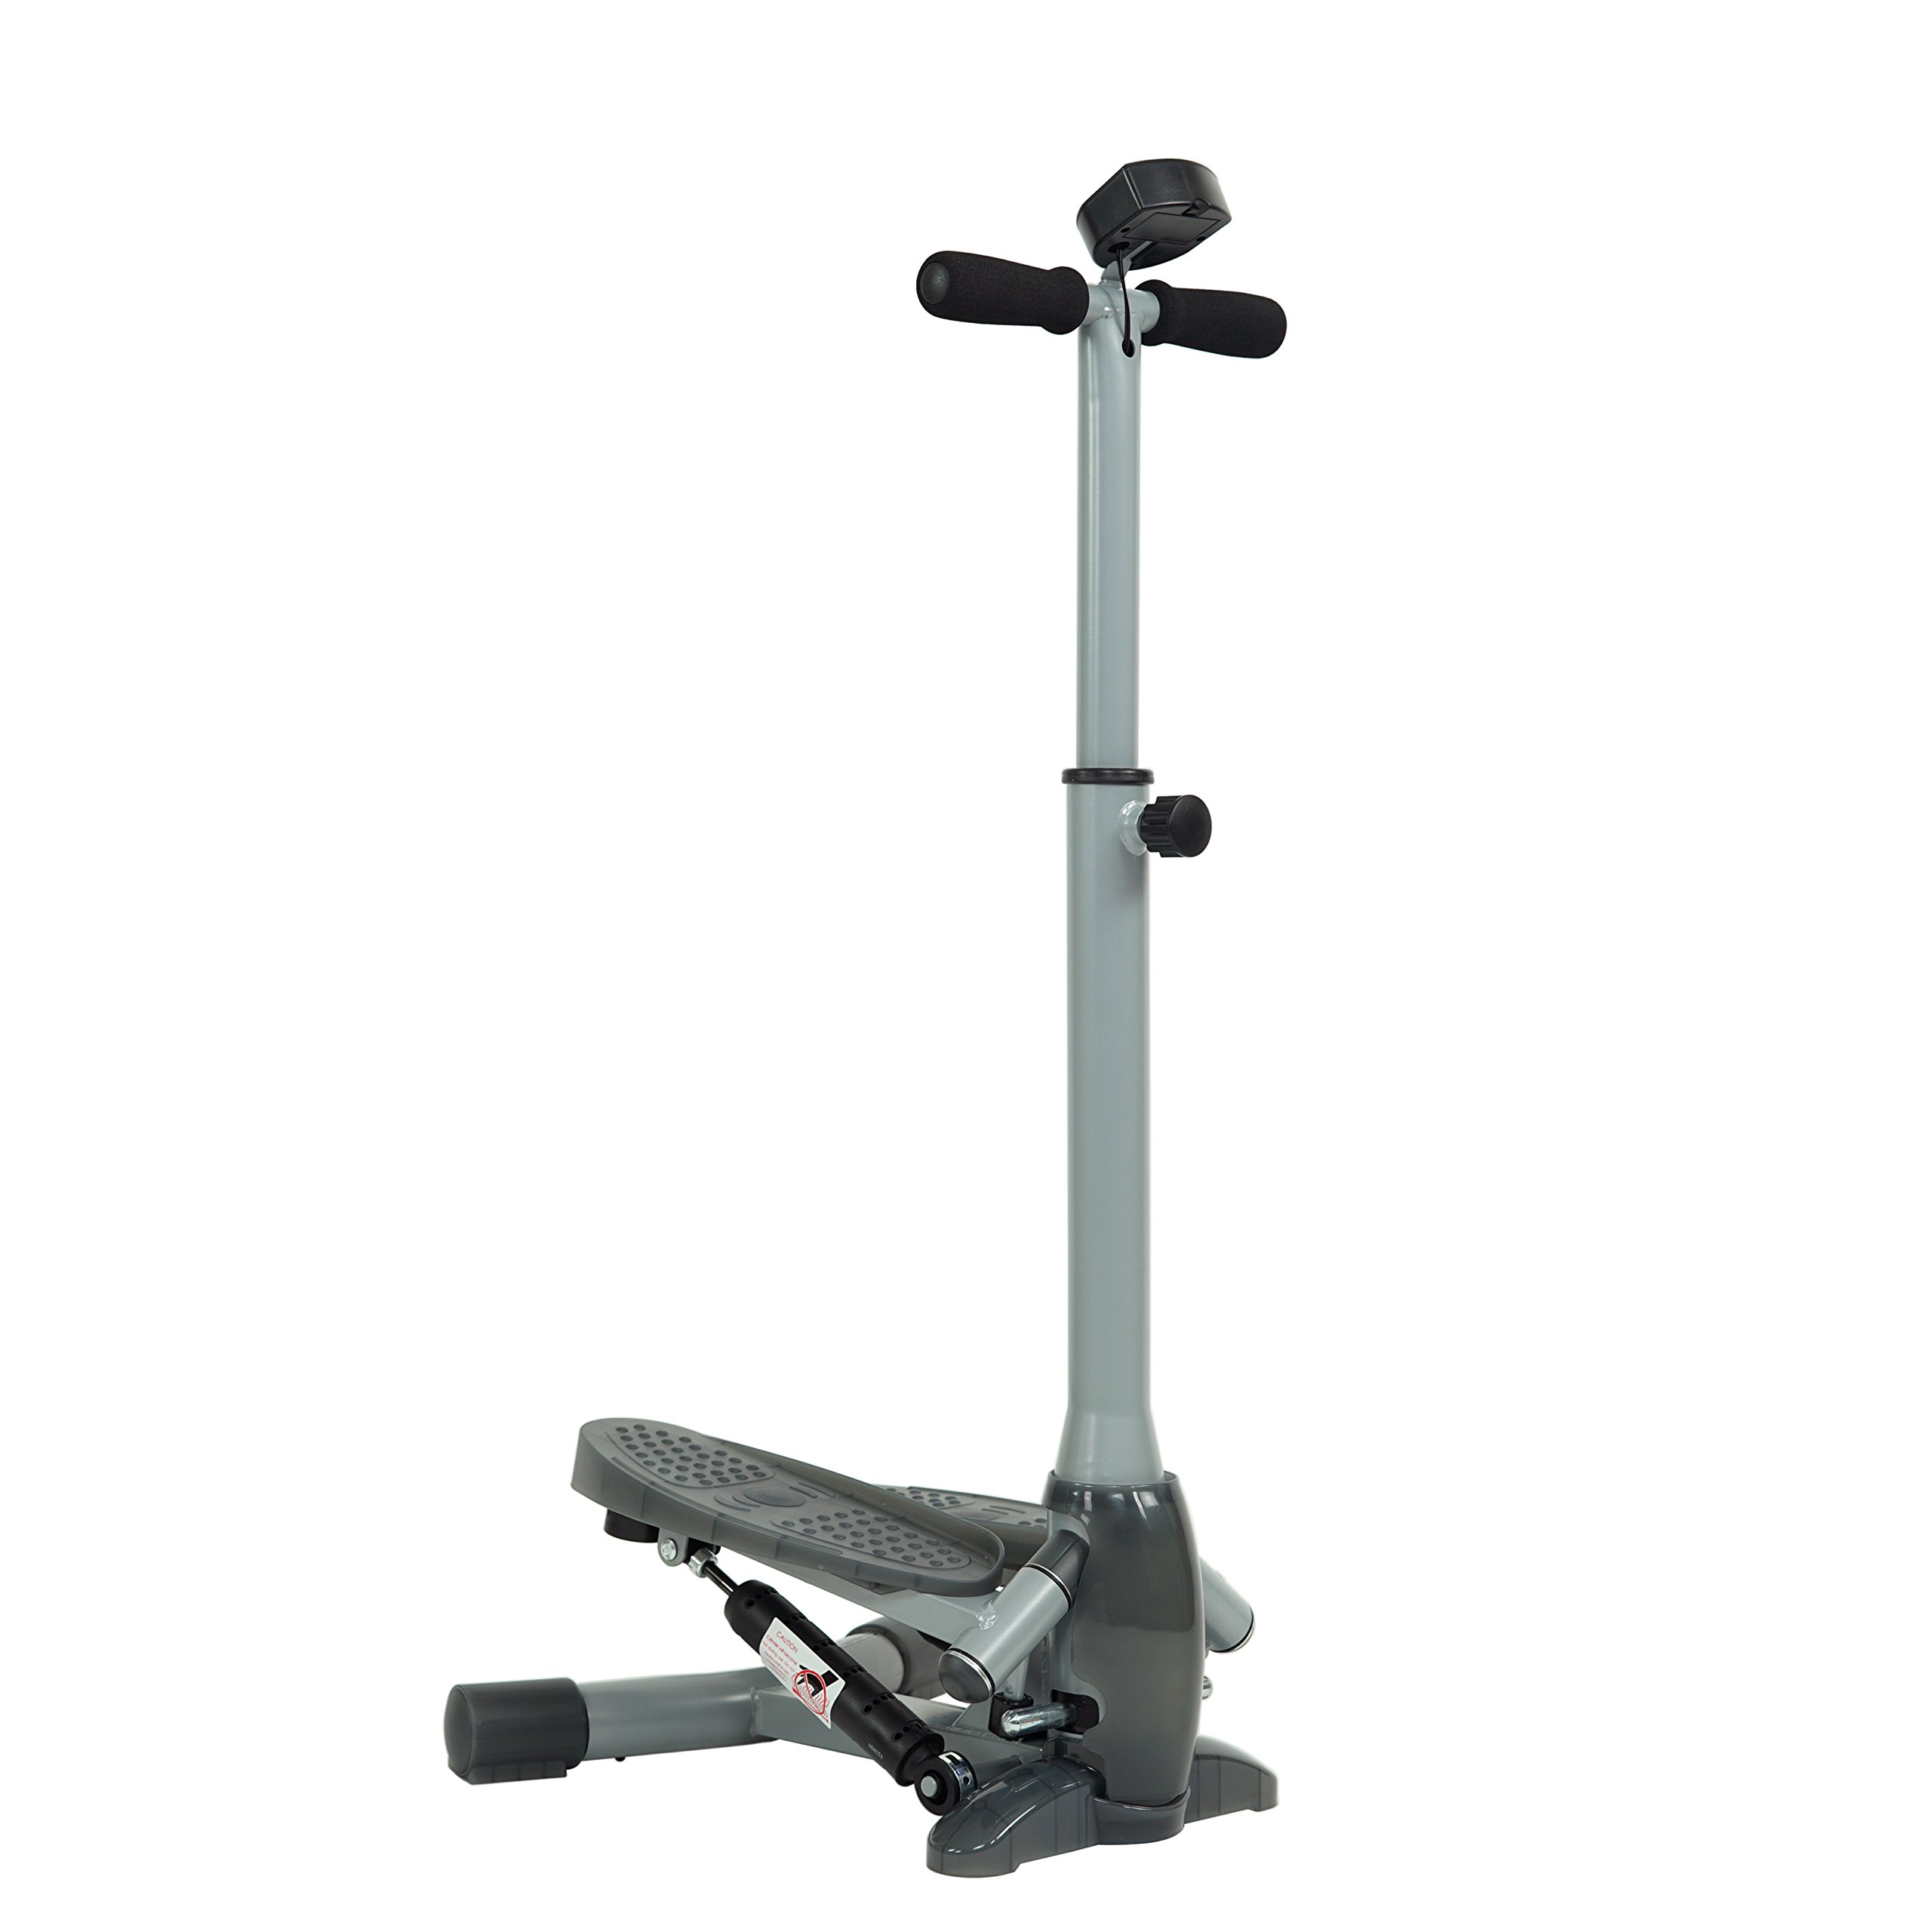 Sunny Health & Fitness SF-S0637 Twist-In Stepper Step Machine w/ Handlebar and LCD Monitor by Sunny Health & Fitness (Image #11)